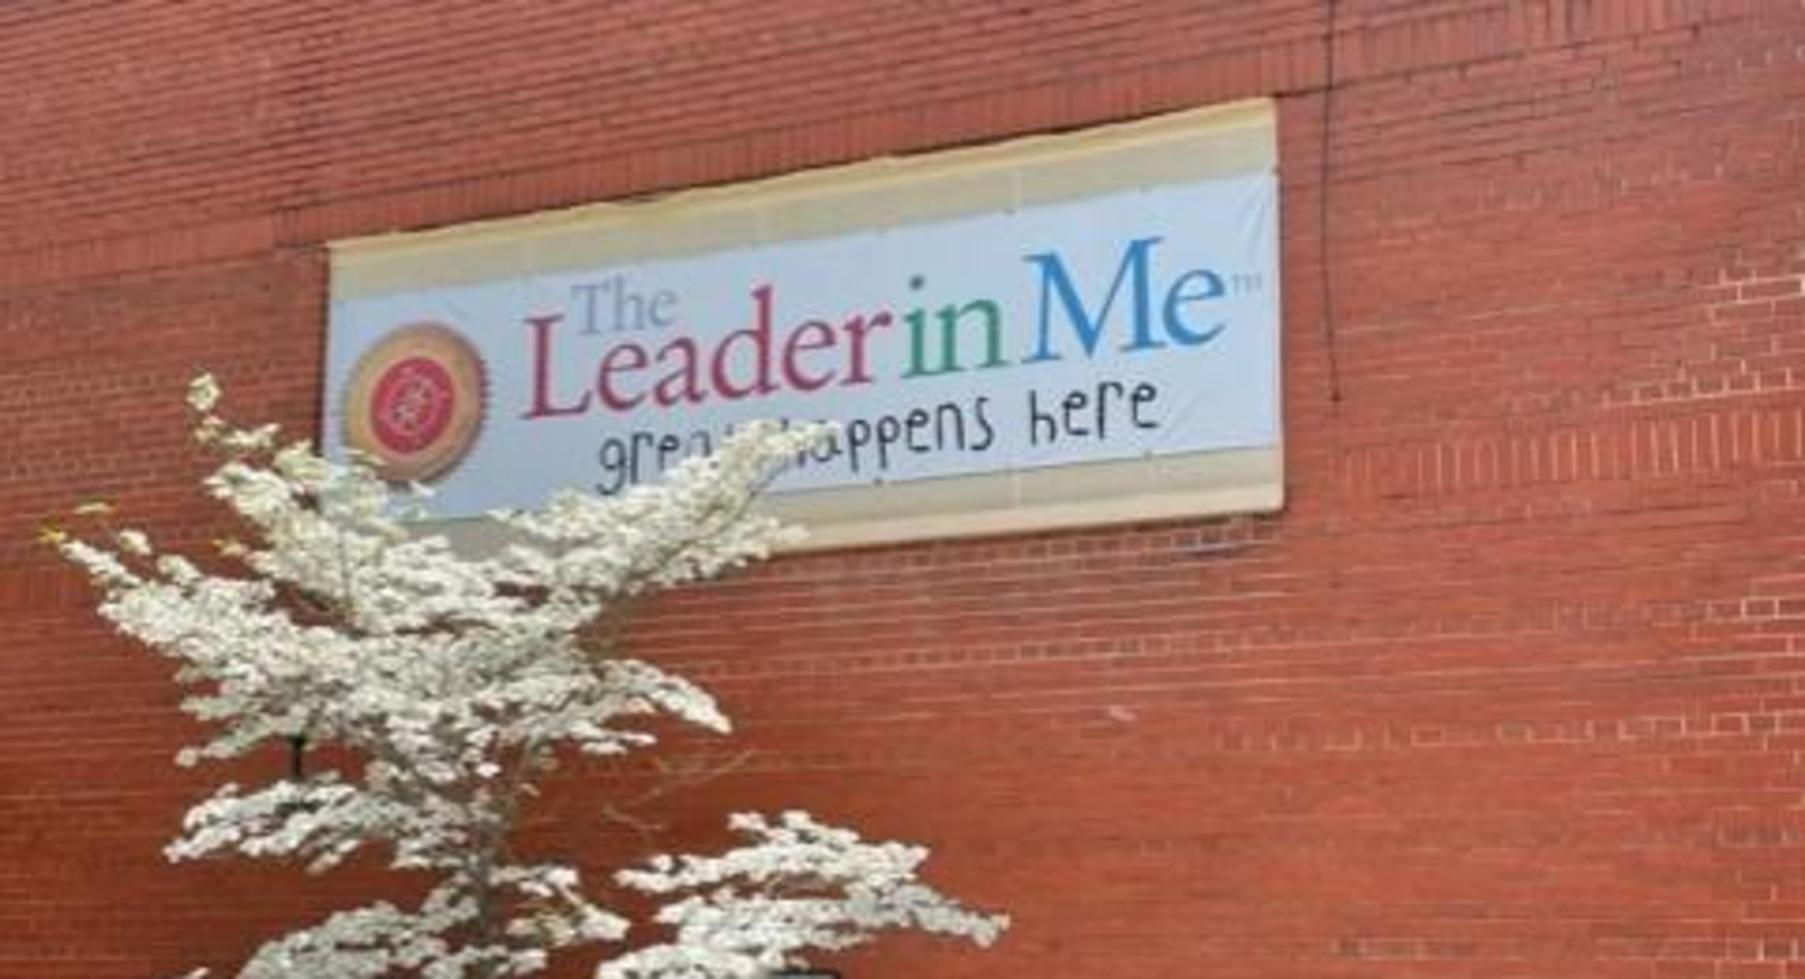 Leader in Me sign